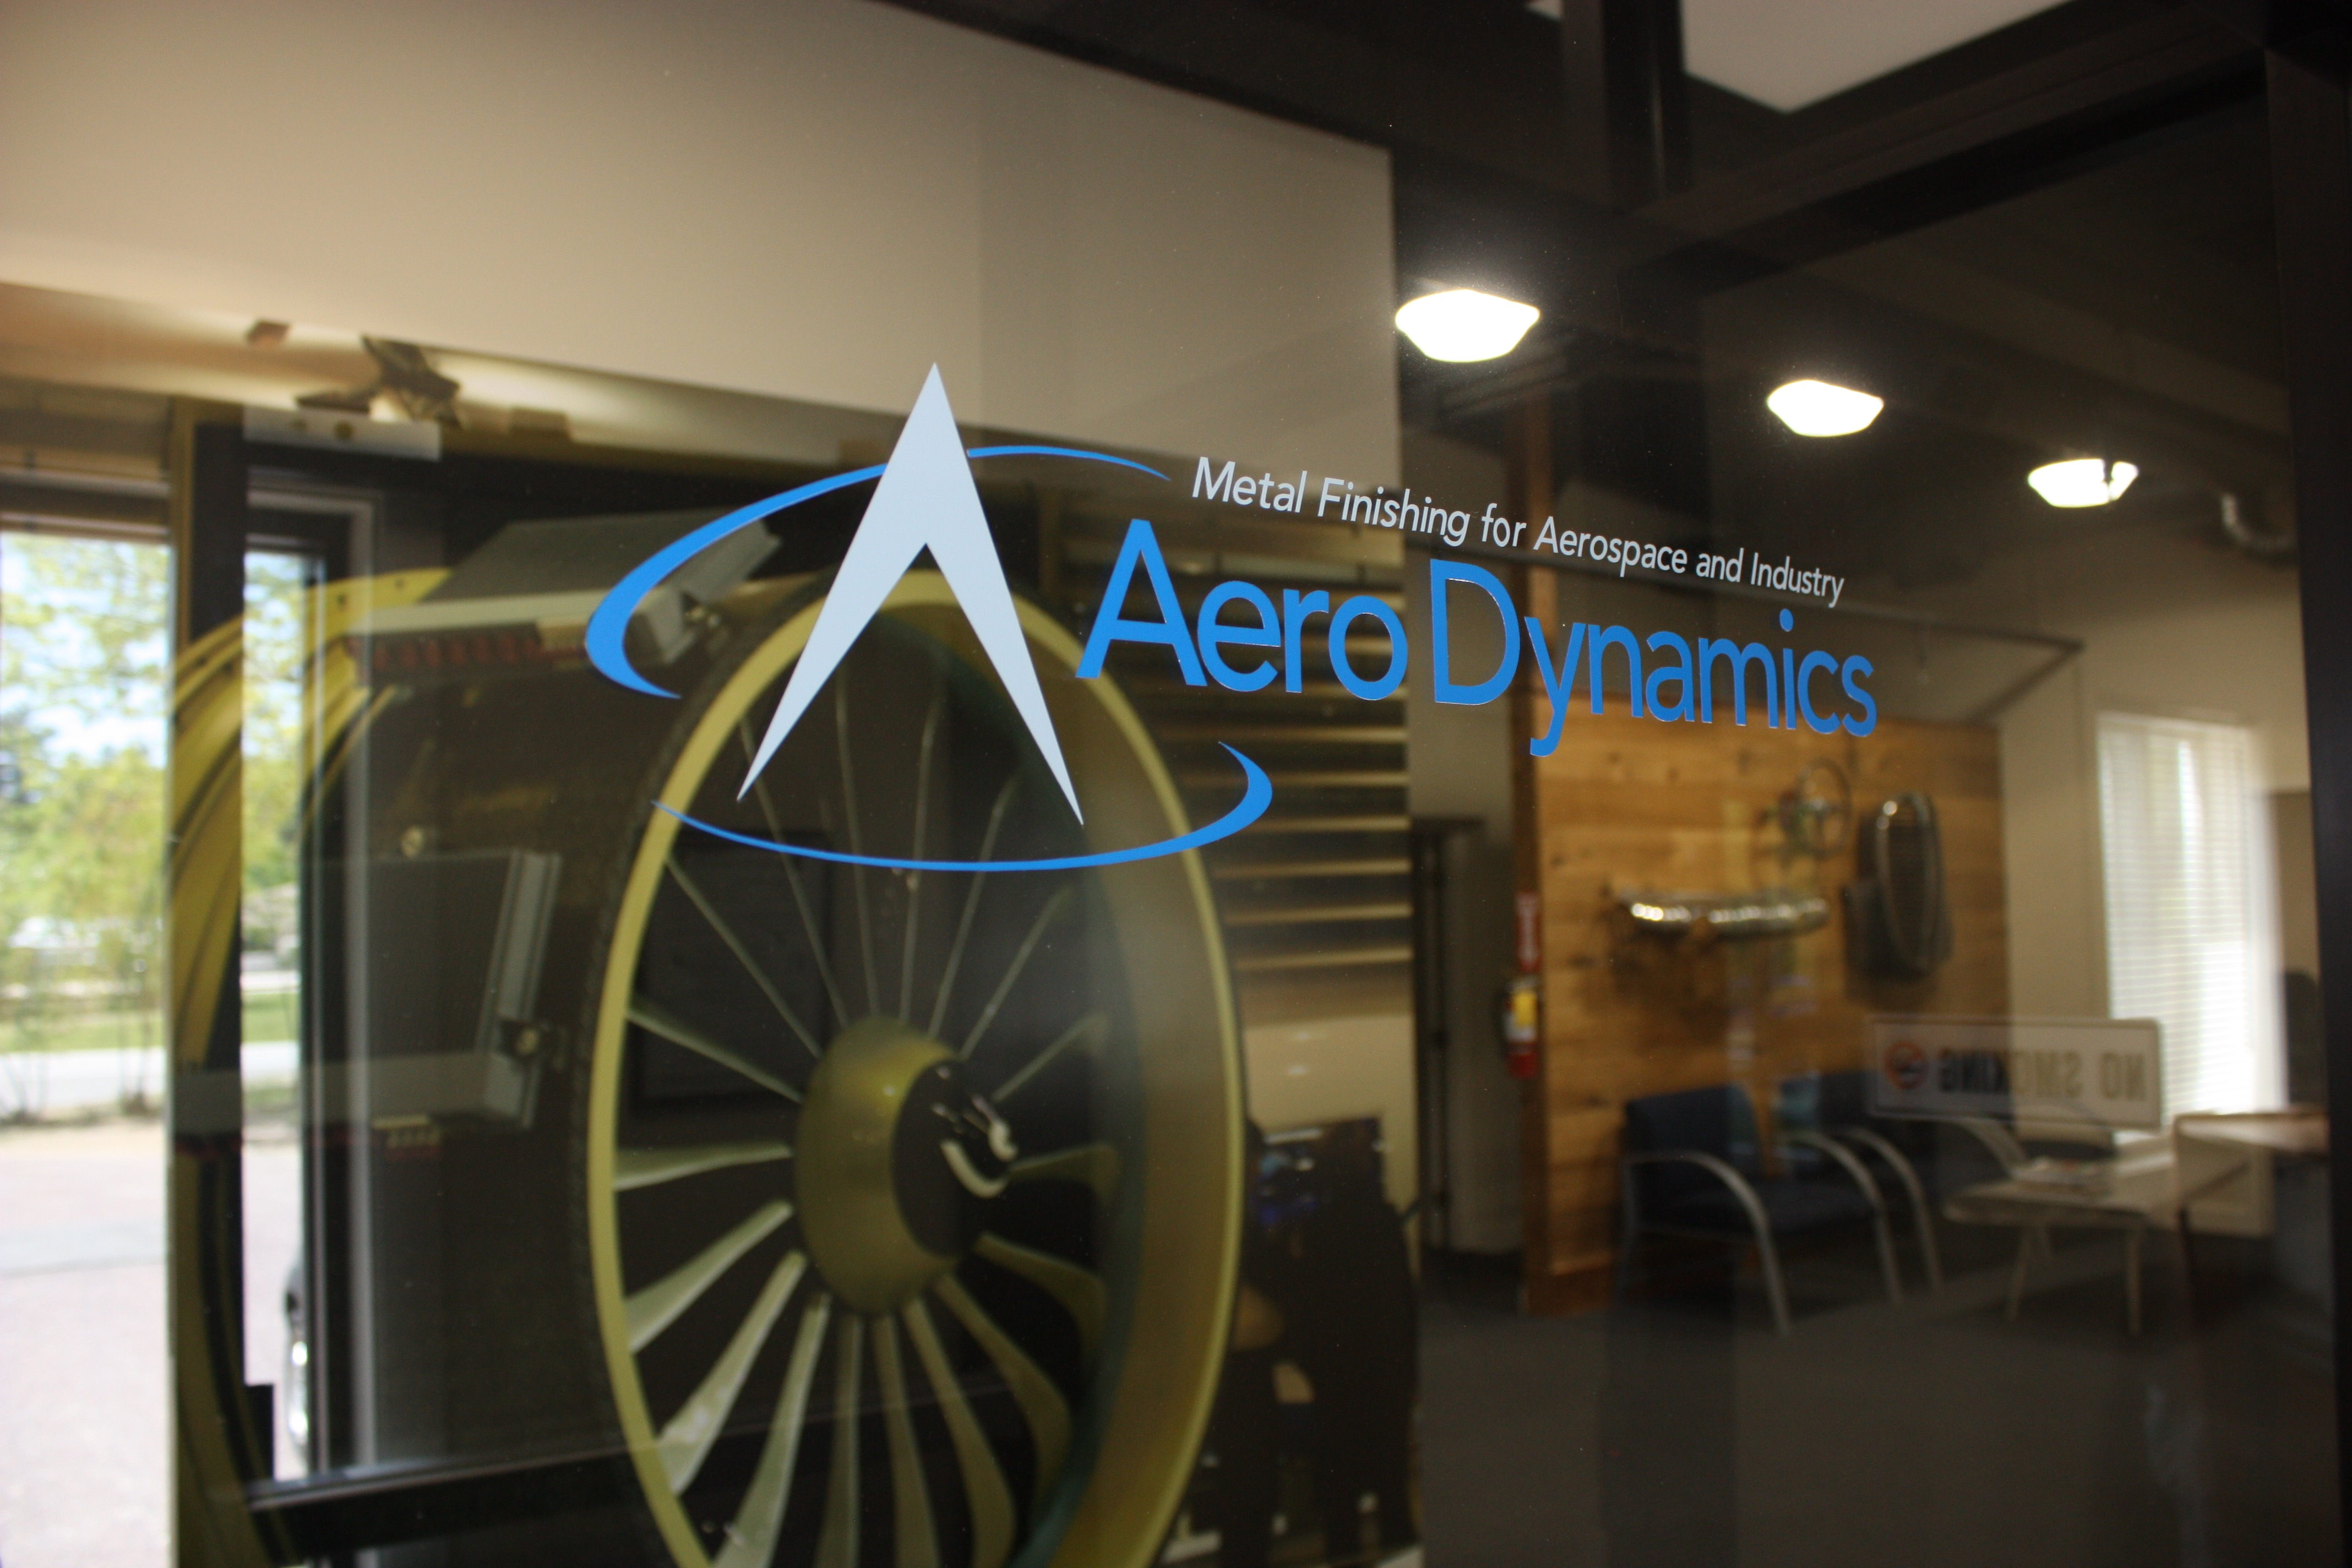 Learn more about AeroDynamics Metal Finishing a NADCAP Certified company